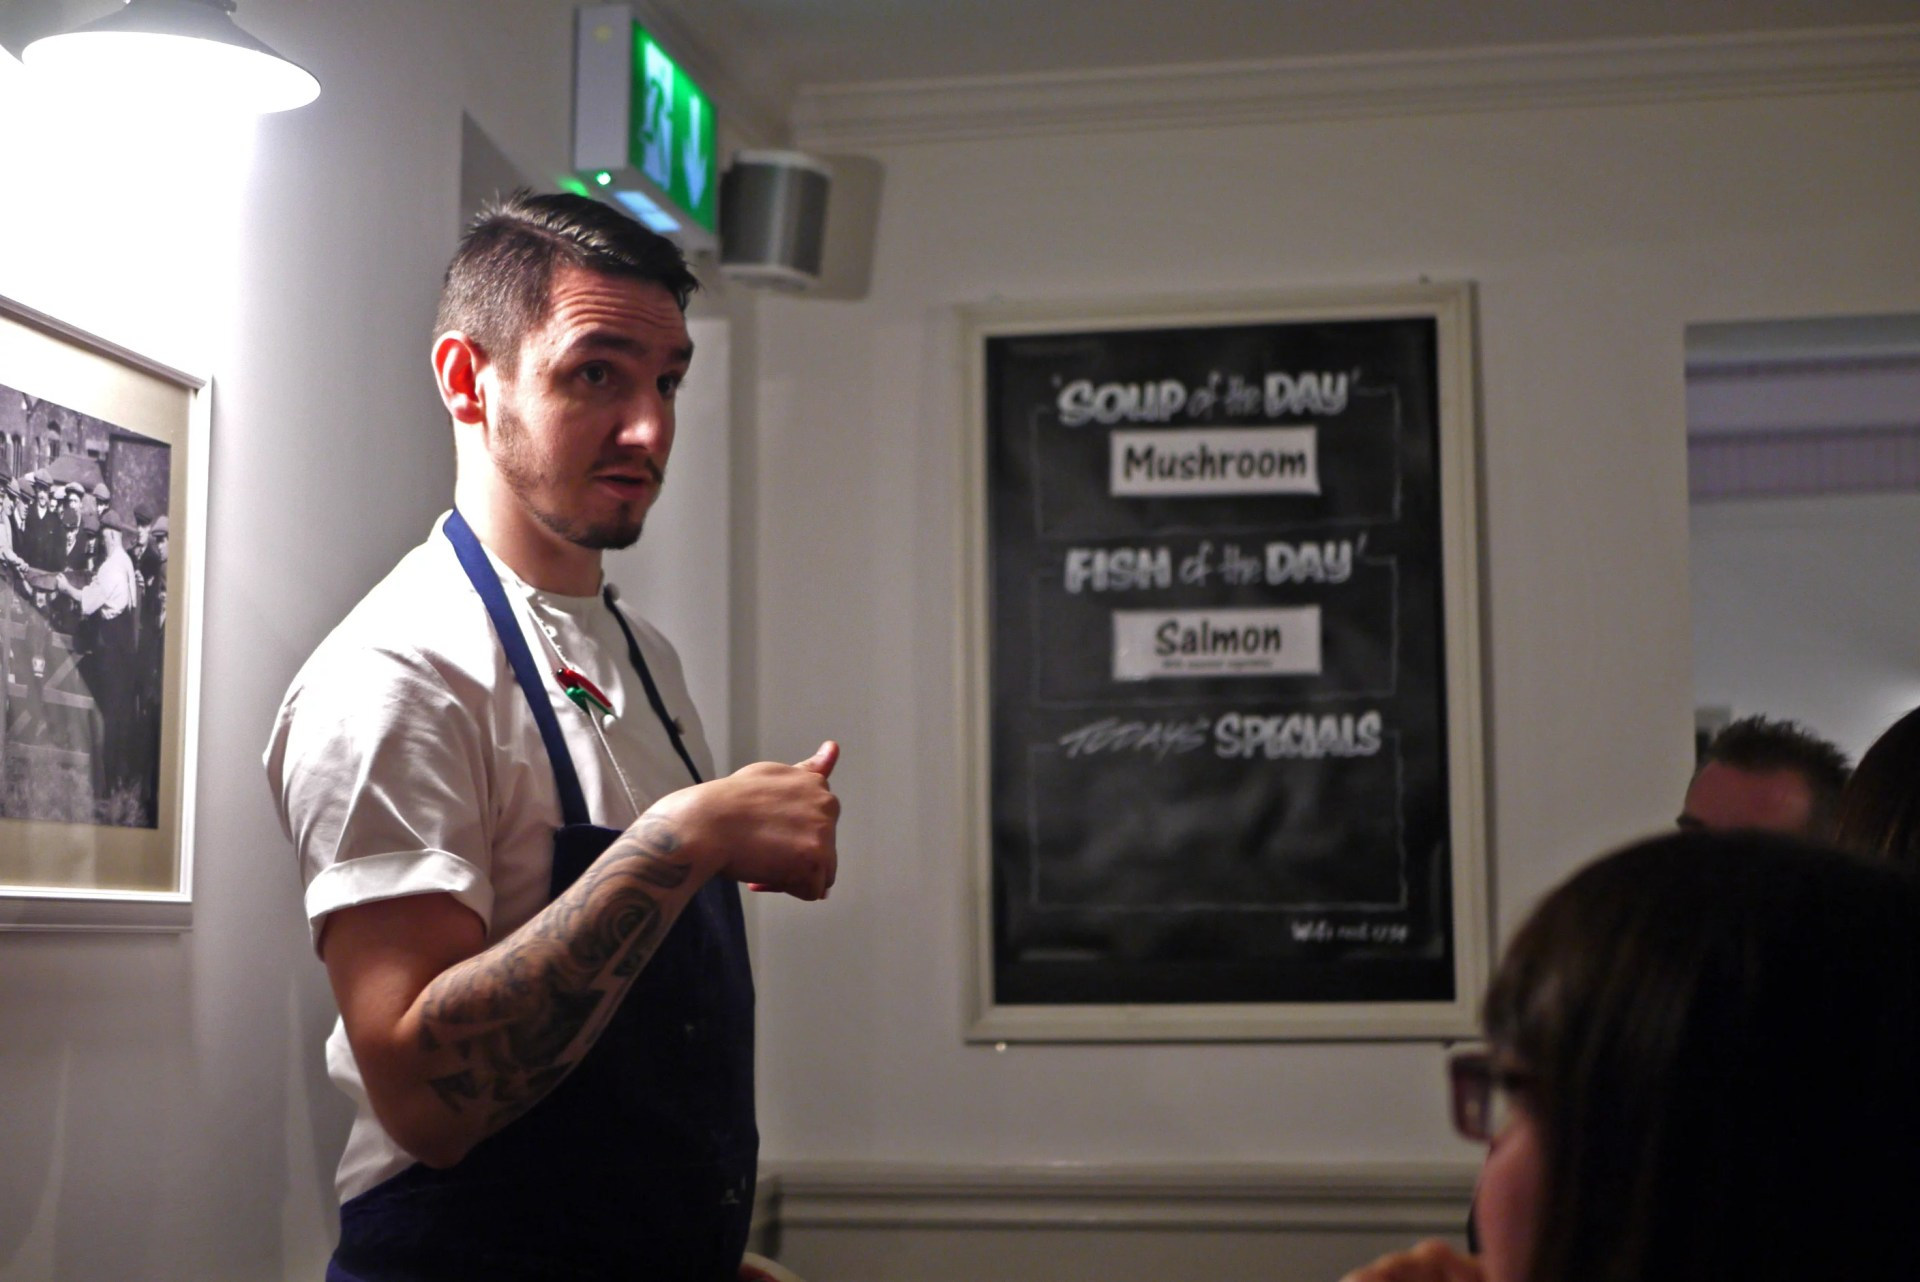 Lewis Gallagher, Head Chef